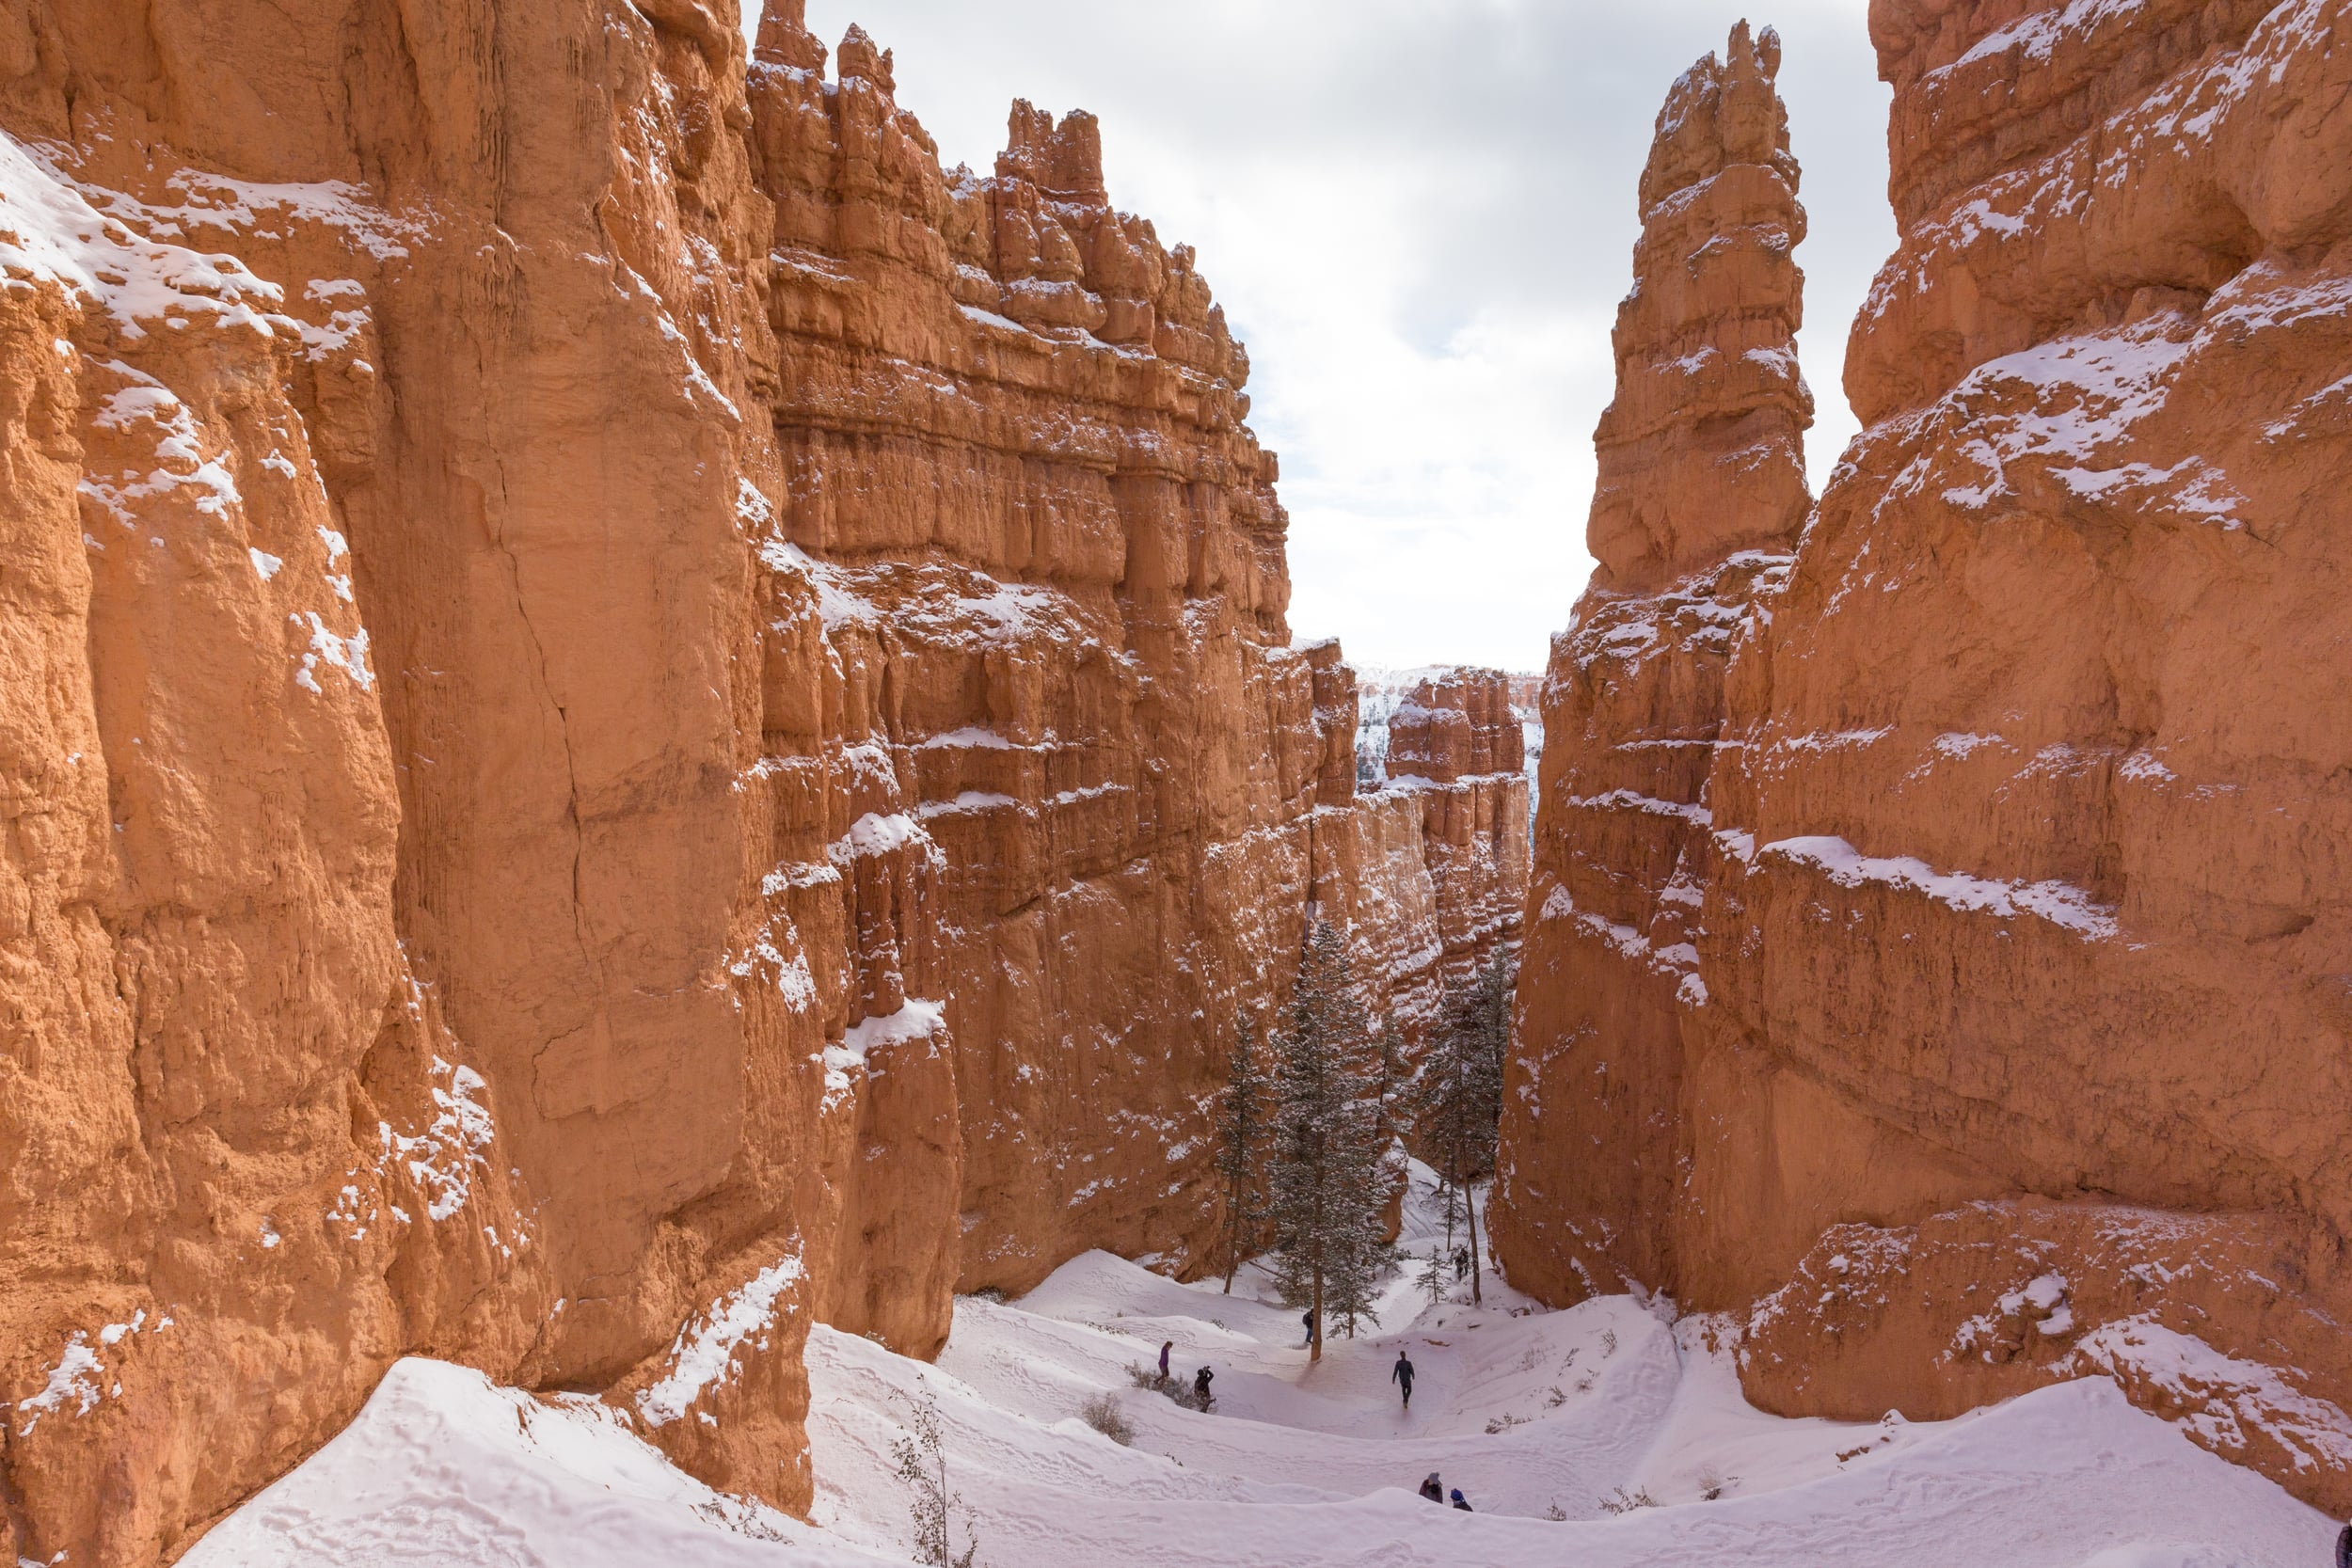 Switchbacks on the Navajo Trail